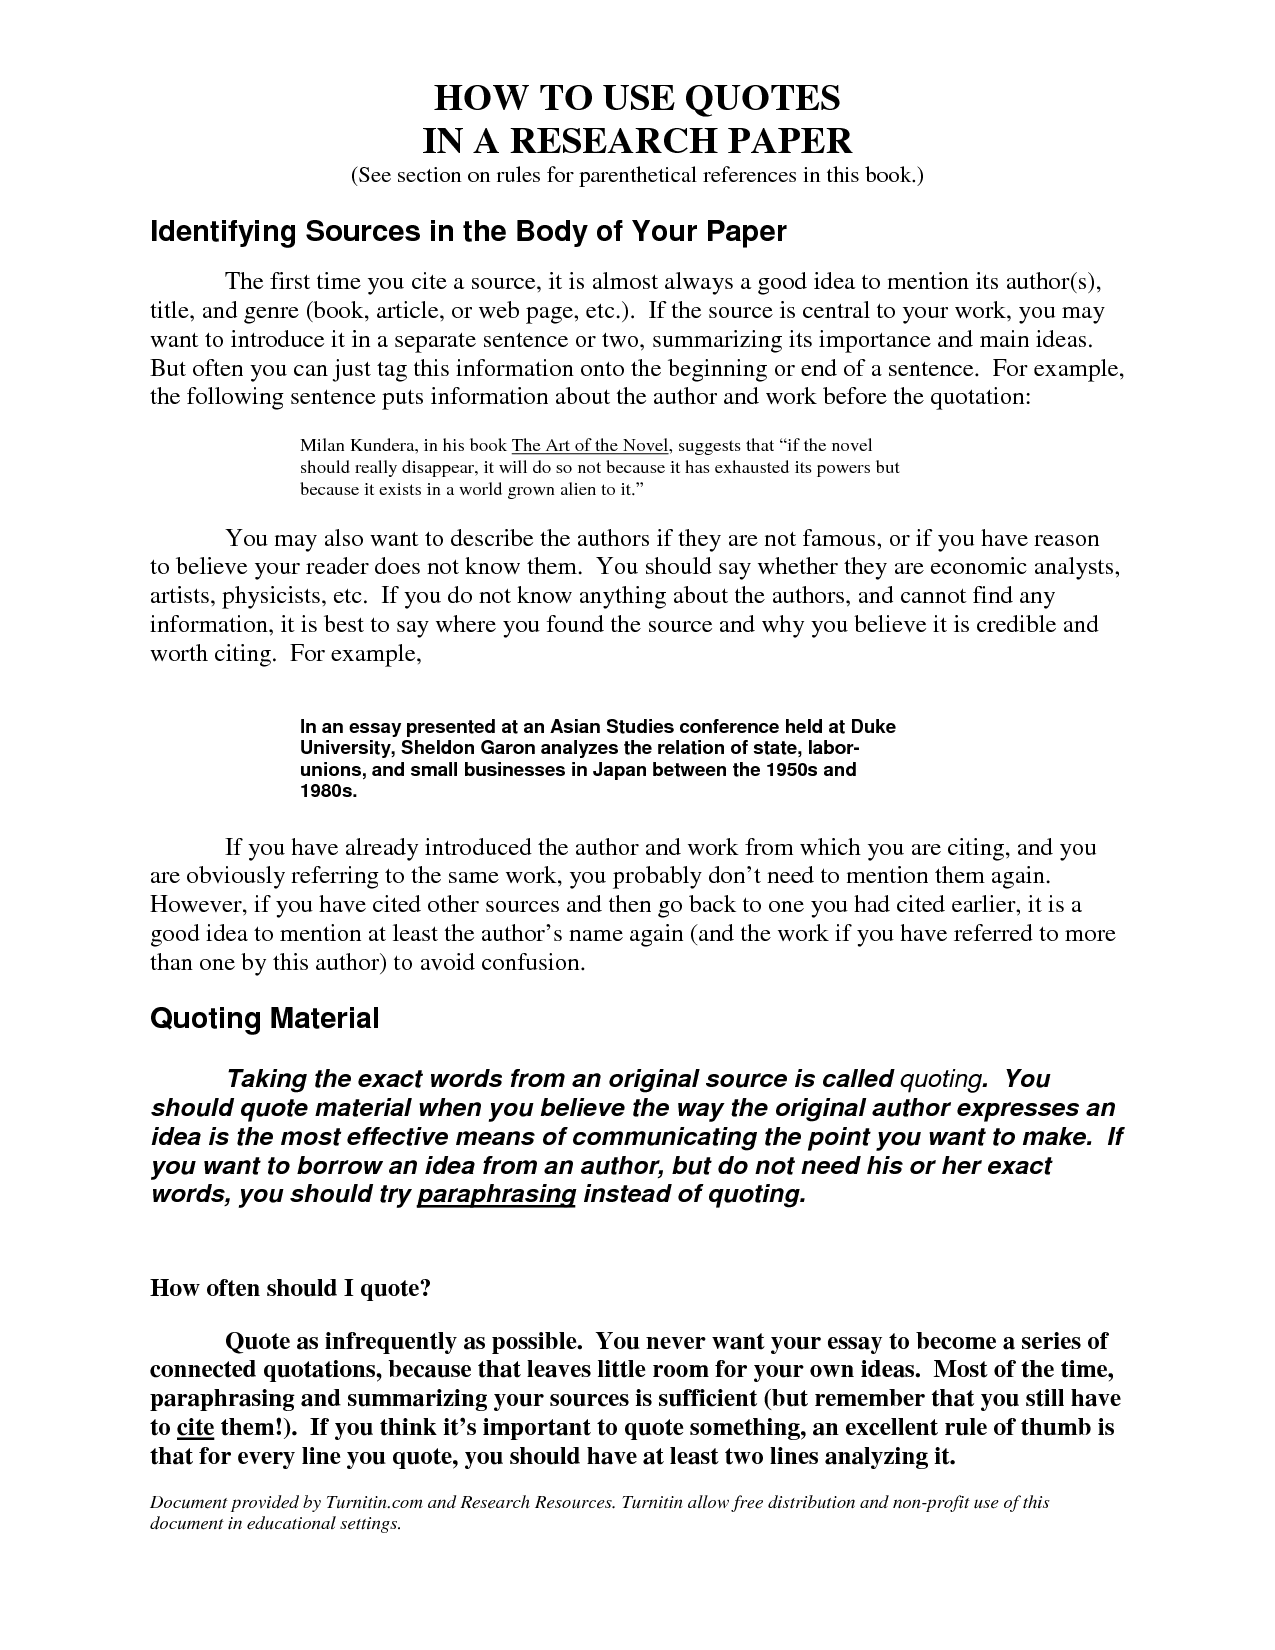 001 Essay Example Best Solutions Of Writing Quotes In Essays Marvelous Embedding On Quotestopics How To Unusual Use Integrate Quotations University Essays-apa Or Mla Full